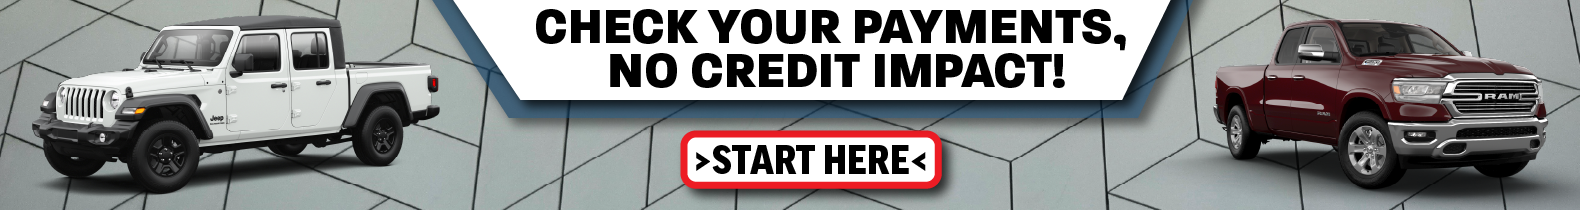 Payment Check Banner